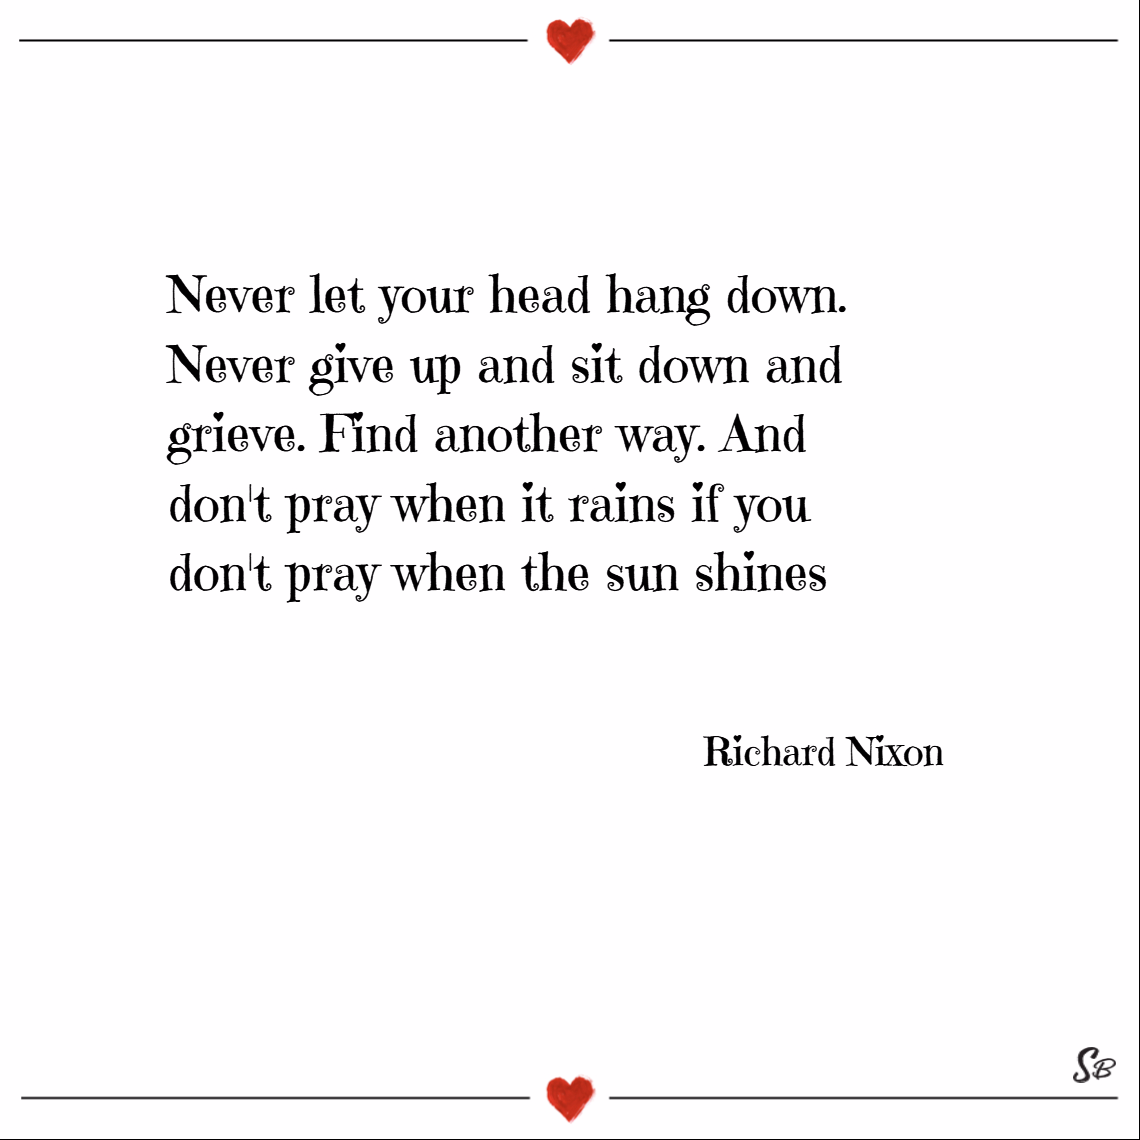 Never let your head hang down. never give up and sit down and grieve. find another way. and don't pray when it rains if you don't pray when the sun shines. – richard m. nixon